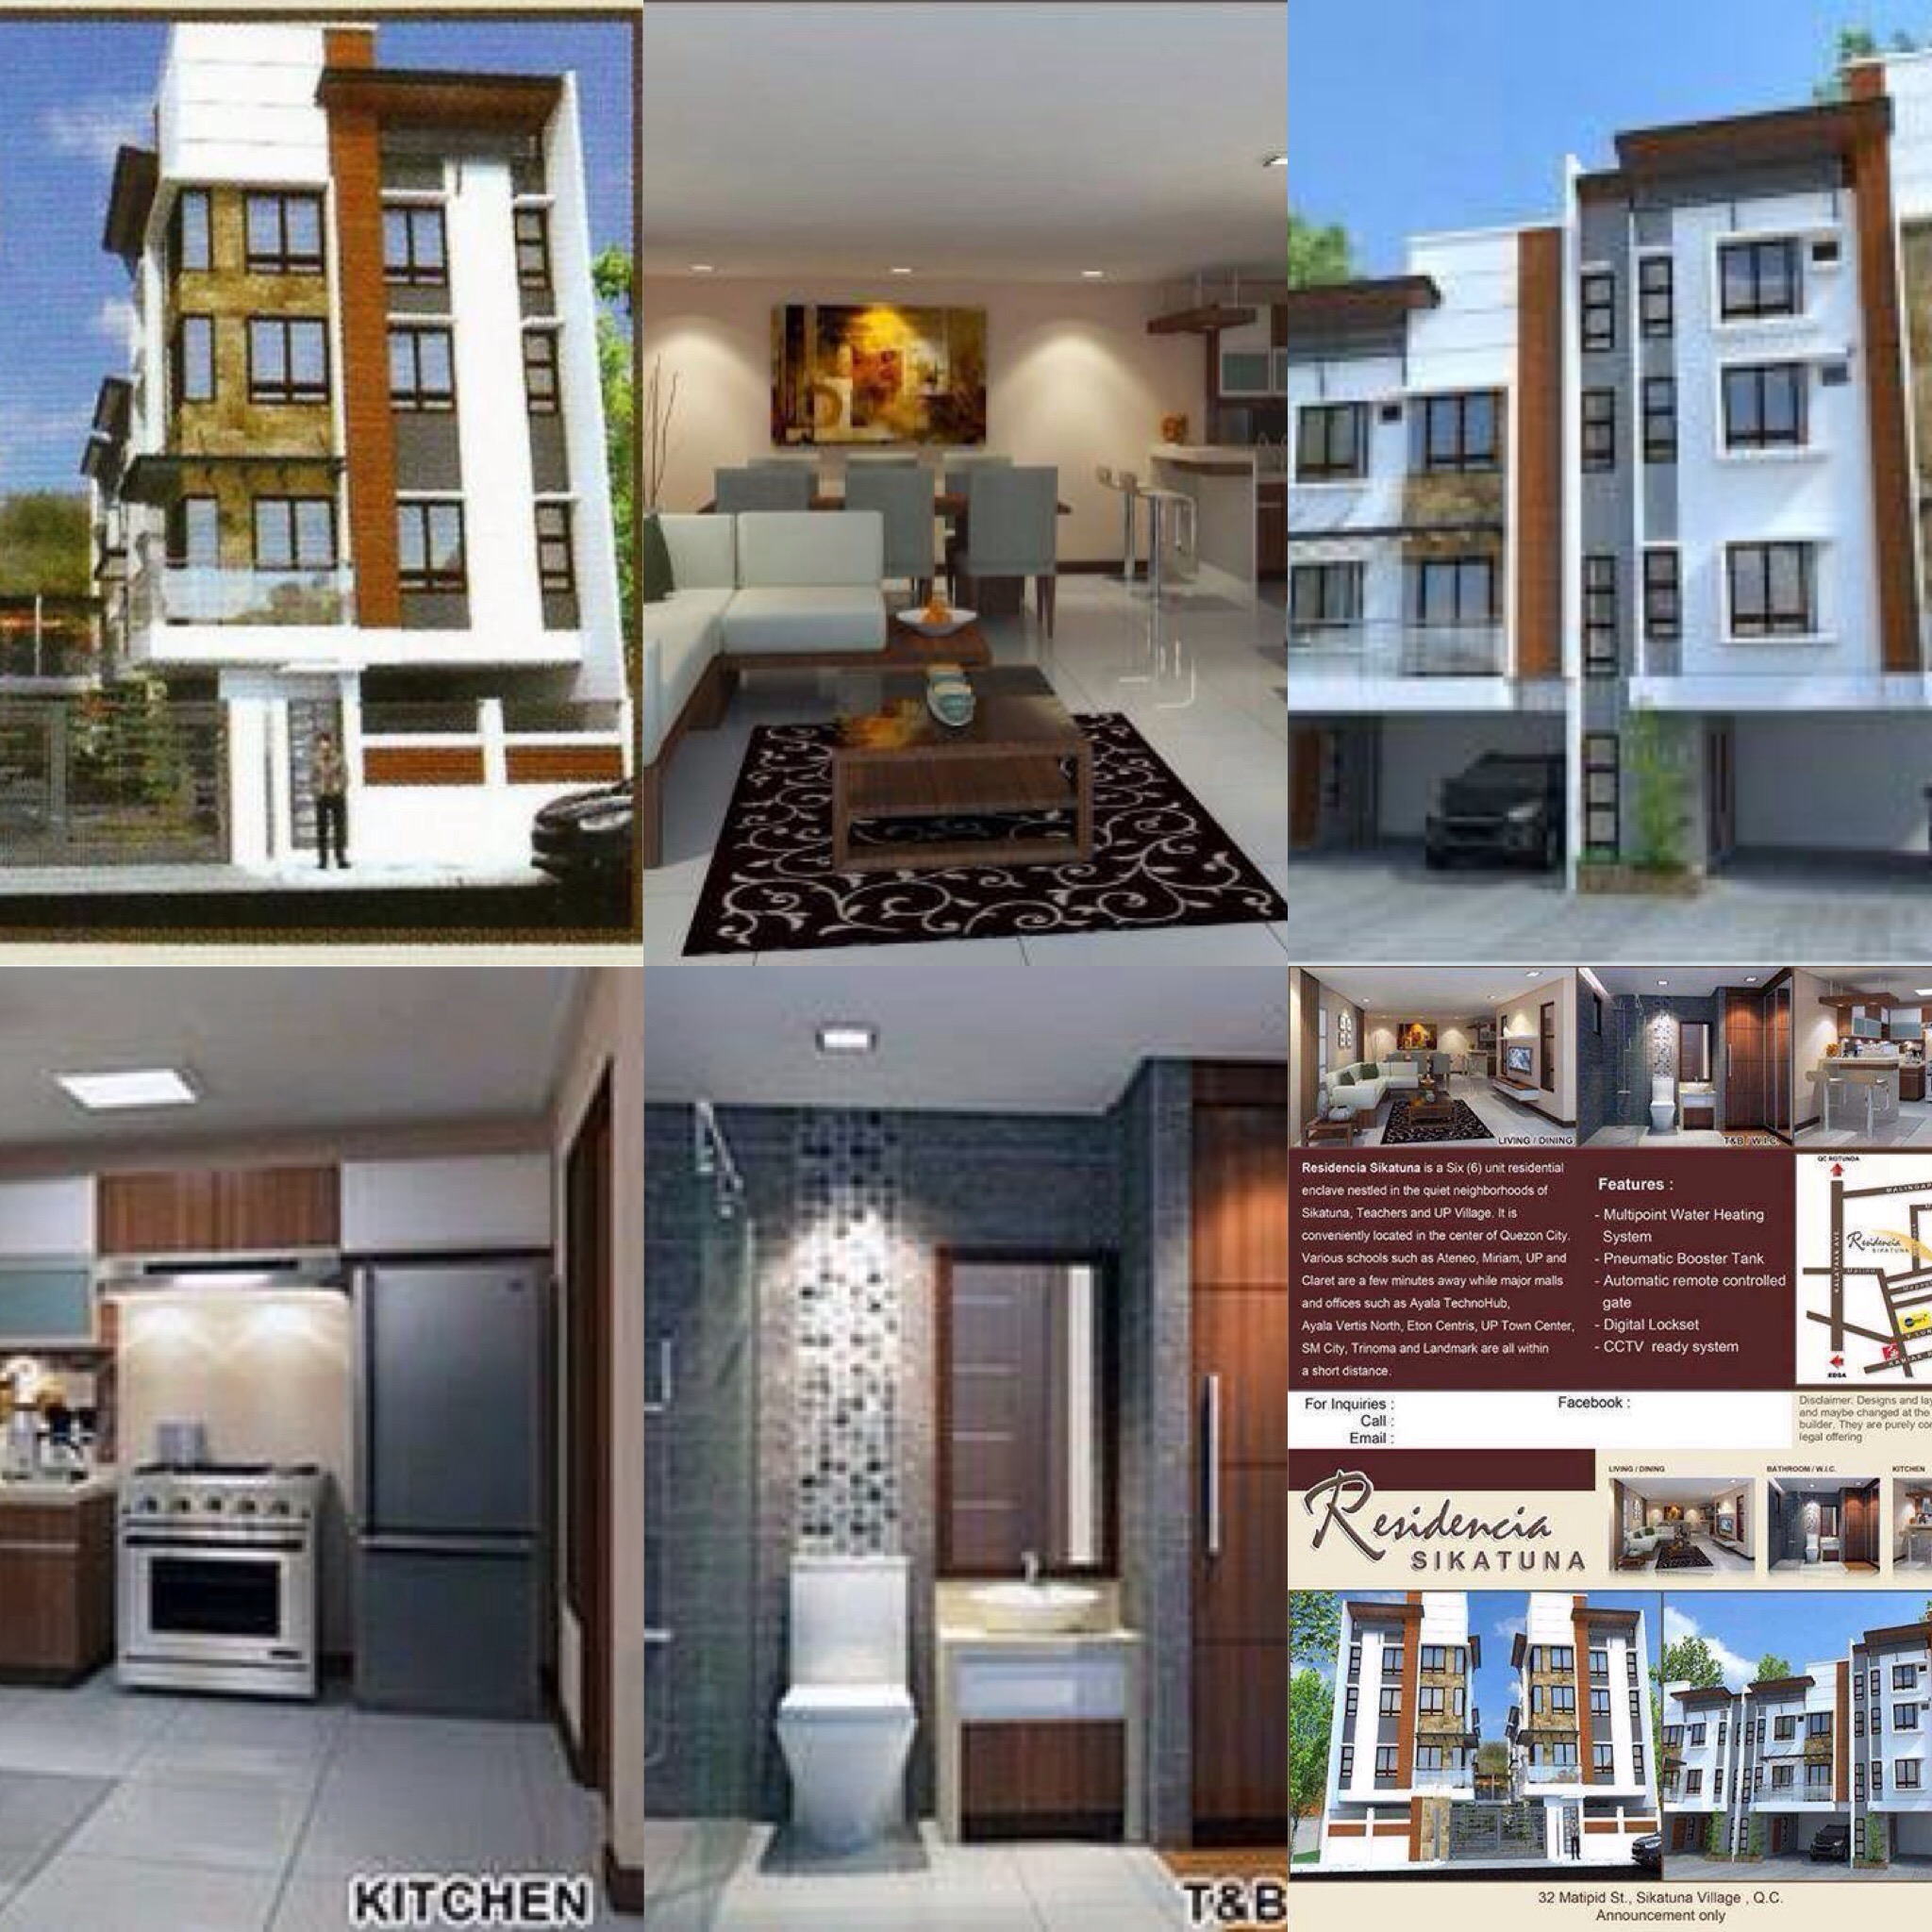 rent to own house qc for sale 09235564517 rico navarro